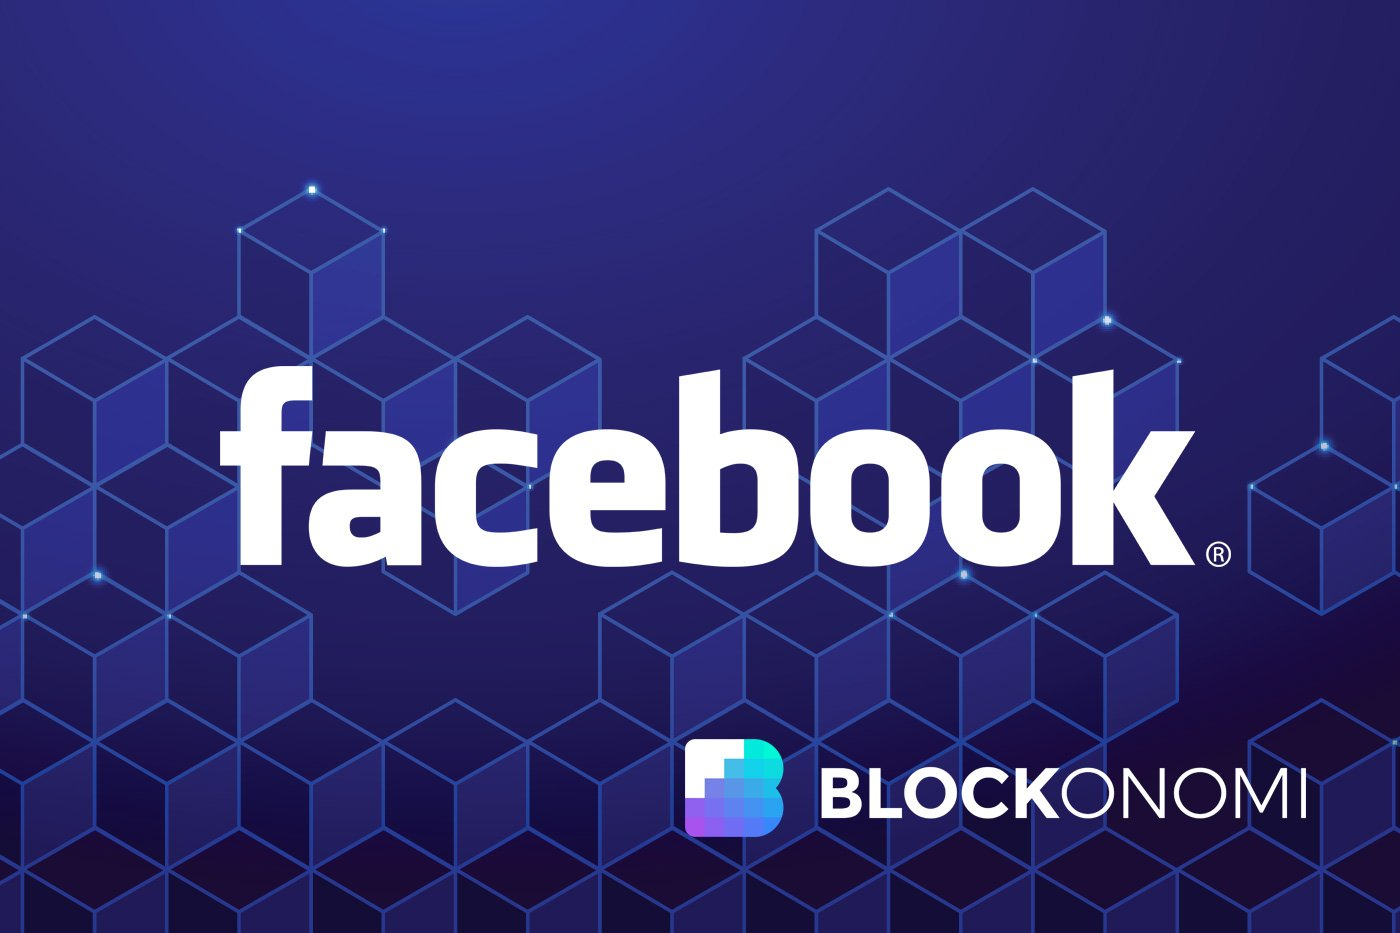 Mark Zuckerberg Says Facebook Looking at Blockchain for 'Distributed' Logins